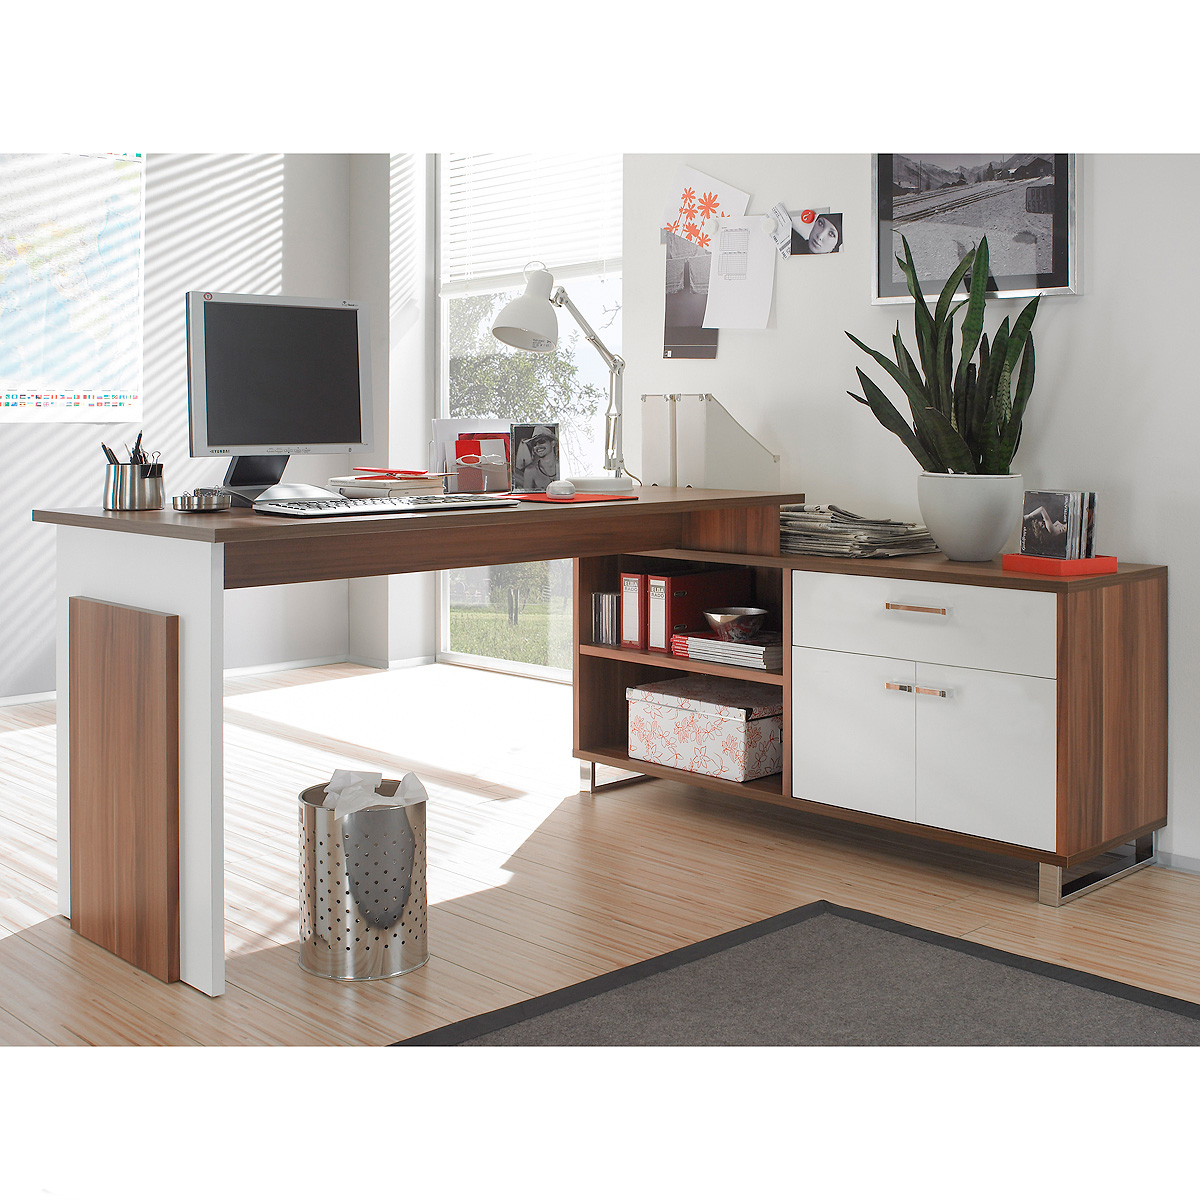 schreibtisch manager manga pc tisch computertisch walnuss wei ebay. Black Bedroom Furniture Sets. Home Design Ideas